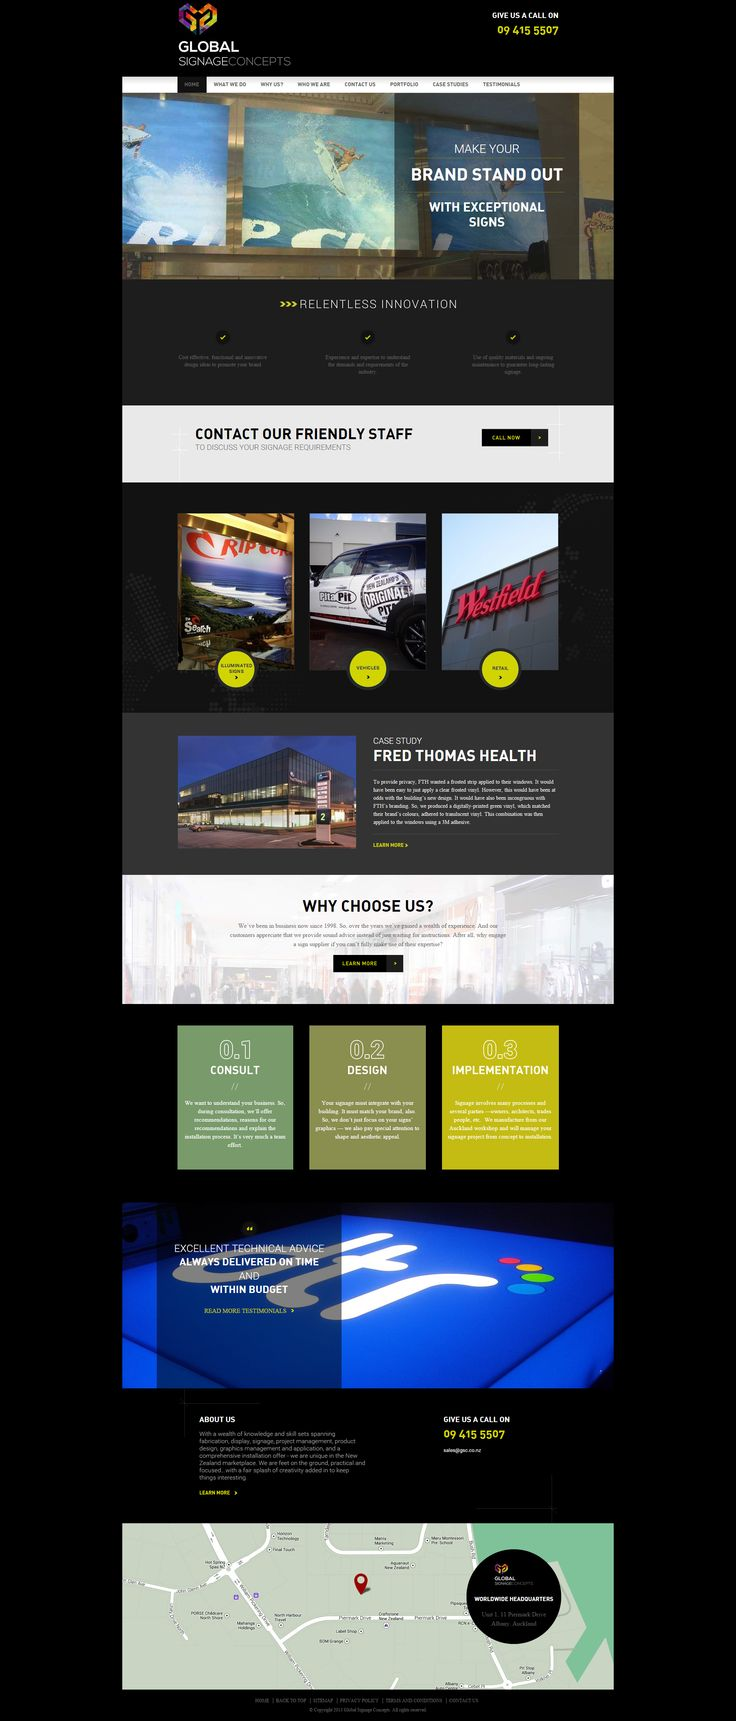 A Zeald Website has helped Global Signage Concepts (http://www.gsc.co.nz/) to achieve their business dream, visit www.zeald.com/Our+Work for more. The art and science of good #websitedesign #website #websiteredesign #webdesign #designinsperation #rethinkyourwebsite #layout #redesign #redesignideas #redesigninspiration #creative #landingpages #beforeafter #responsive #leadgeneration #travel #wordpress #leadgen